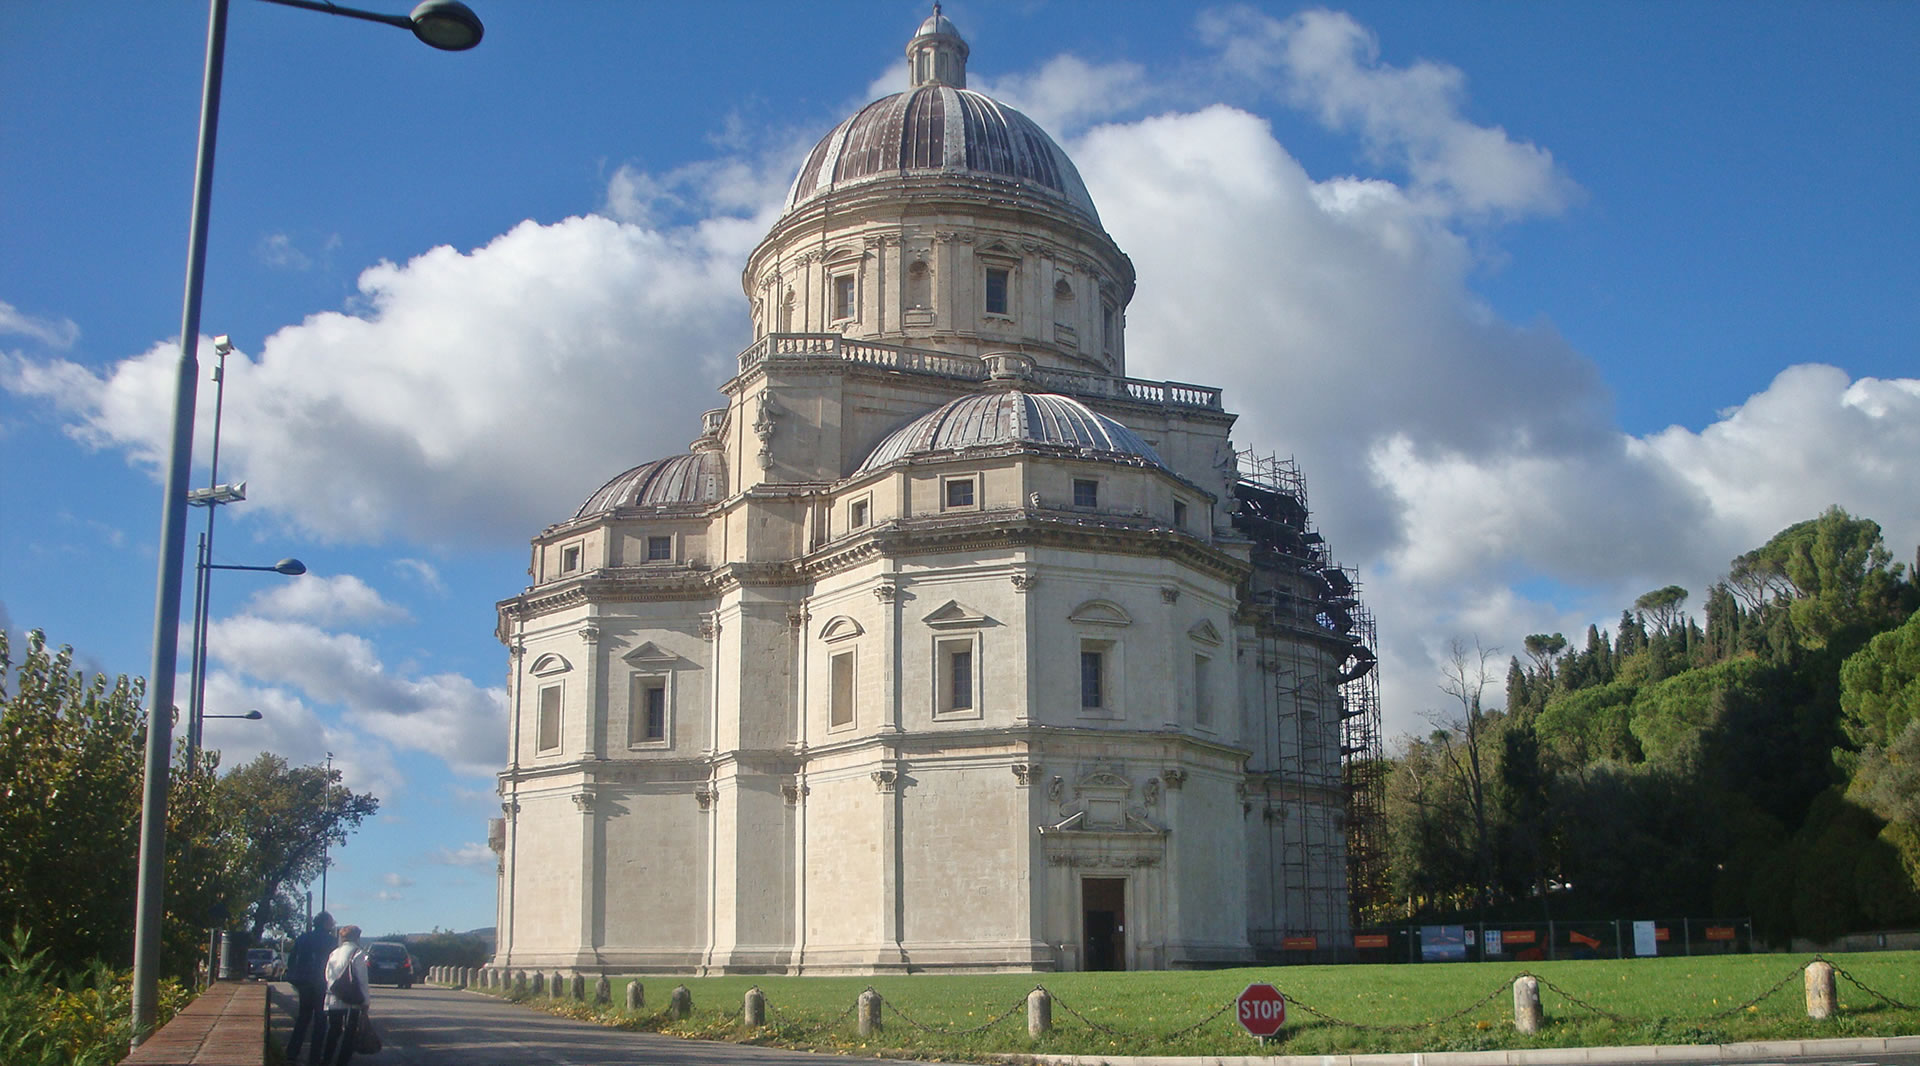 The church of Santa Maria della Consolazione